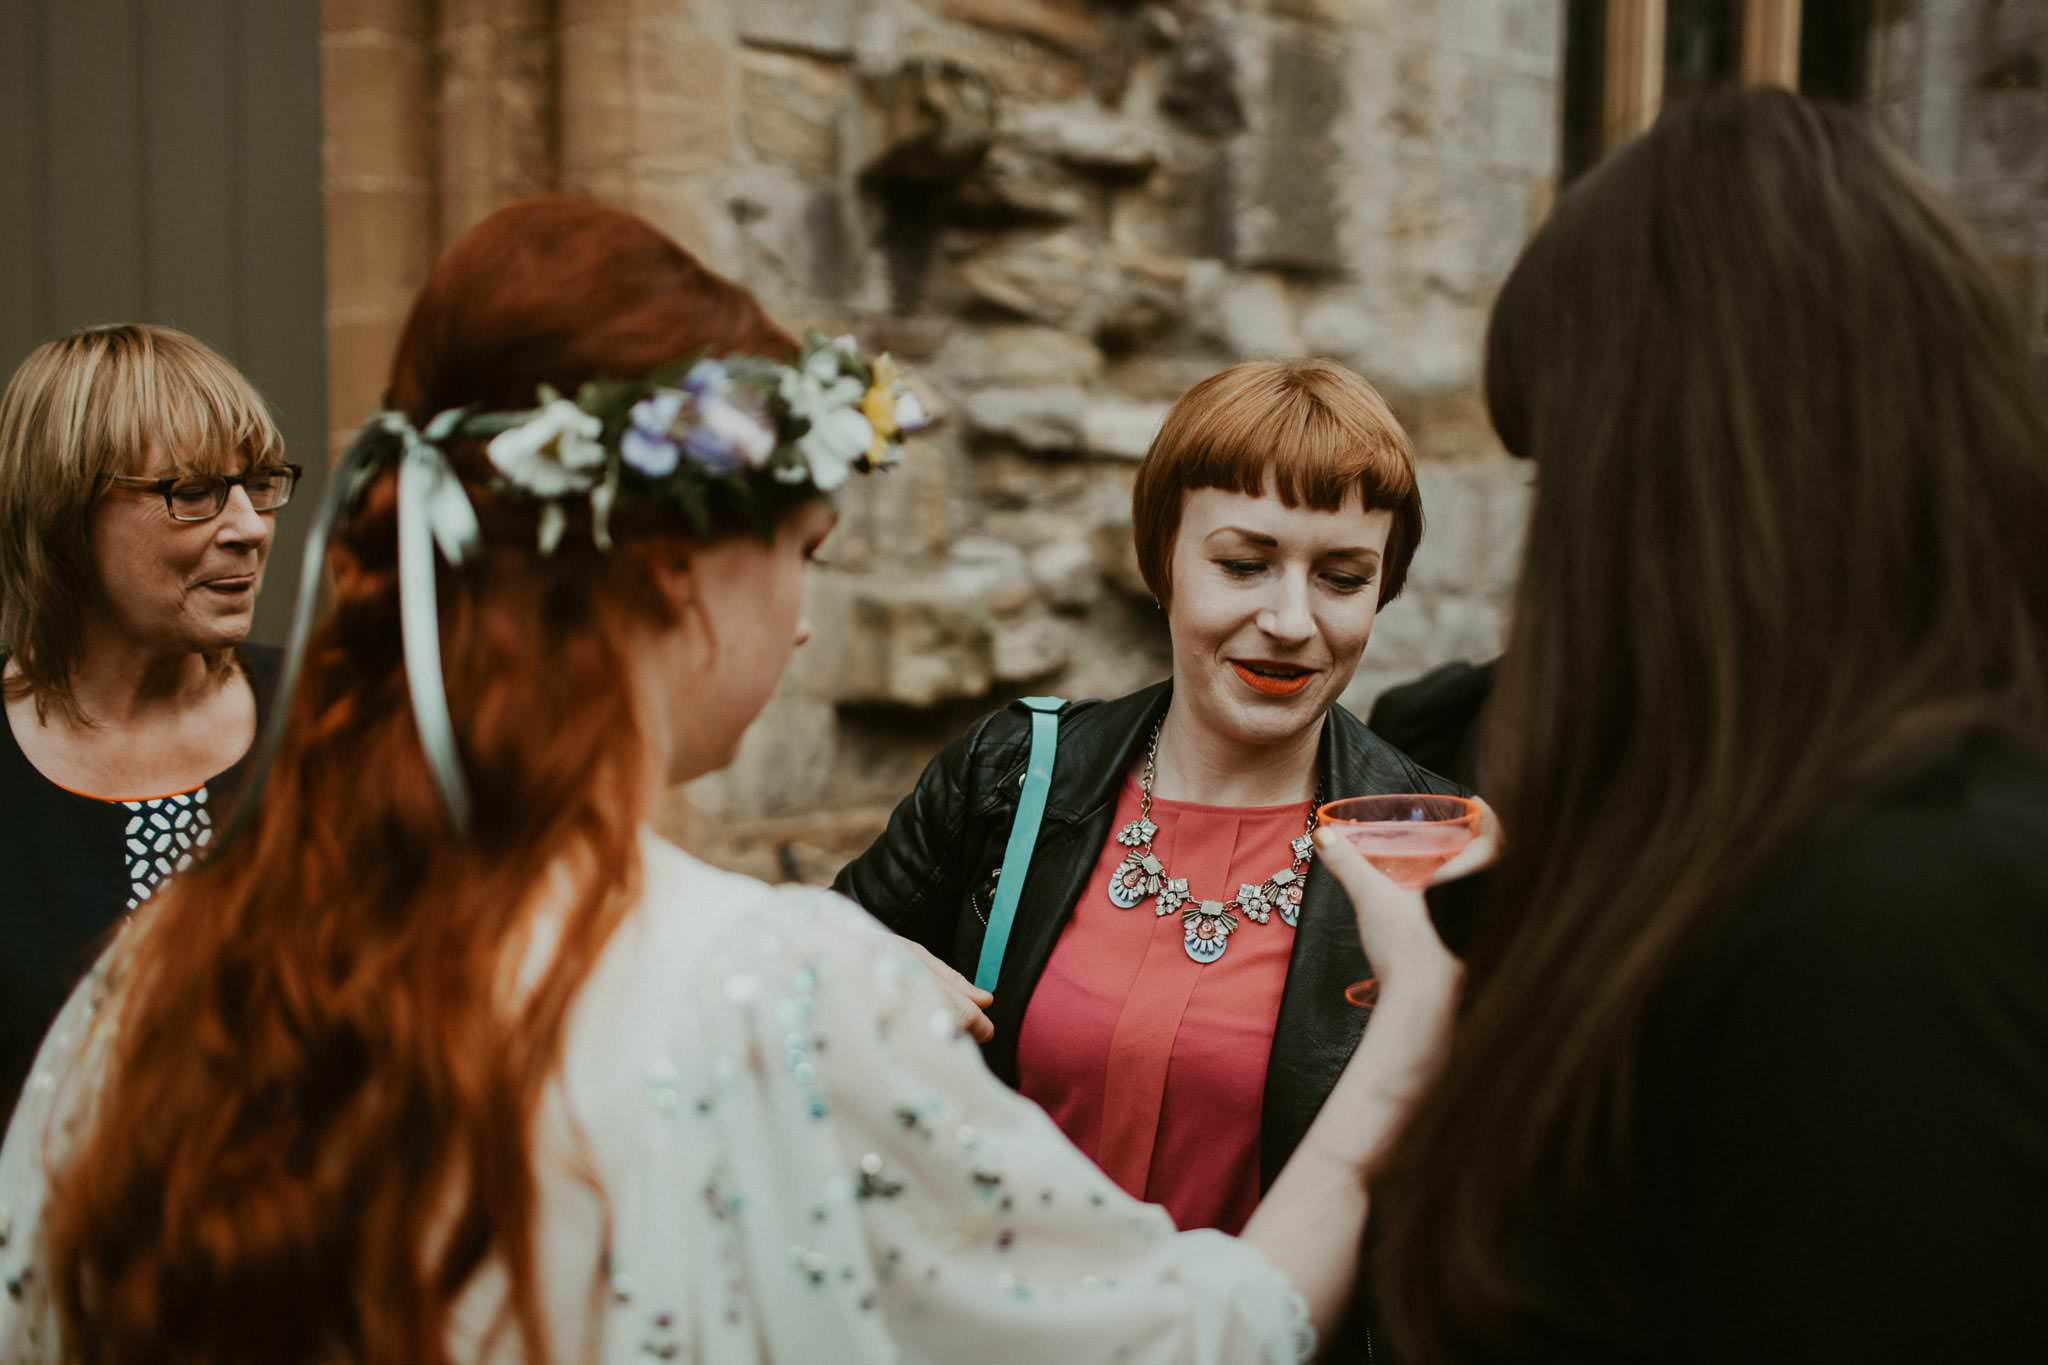 scottish-wedding-photography-087